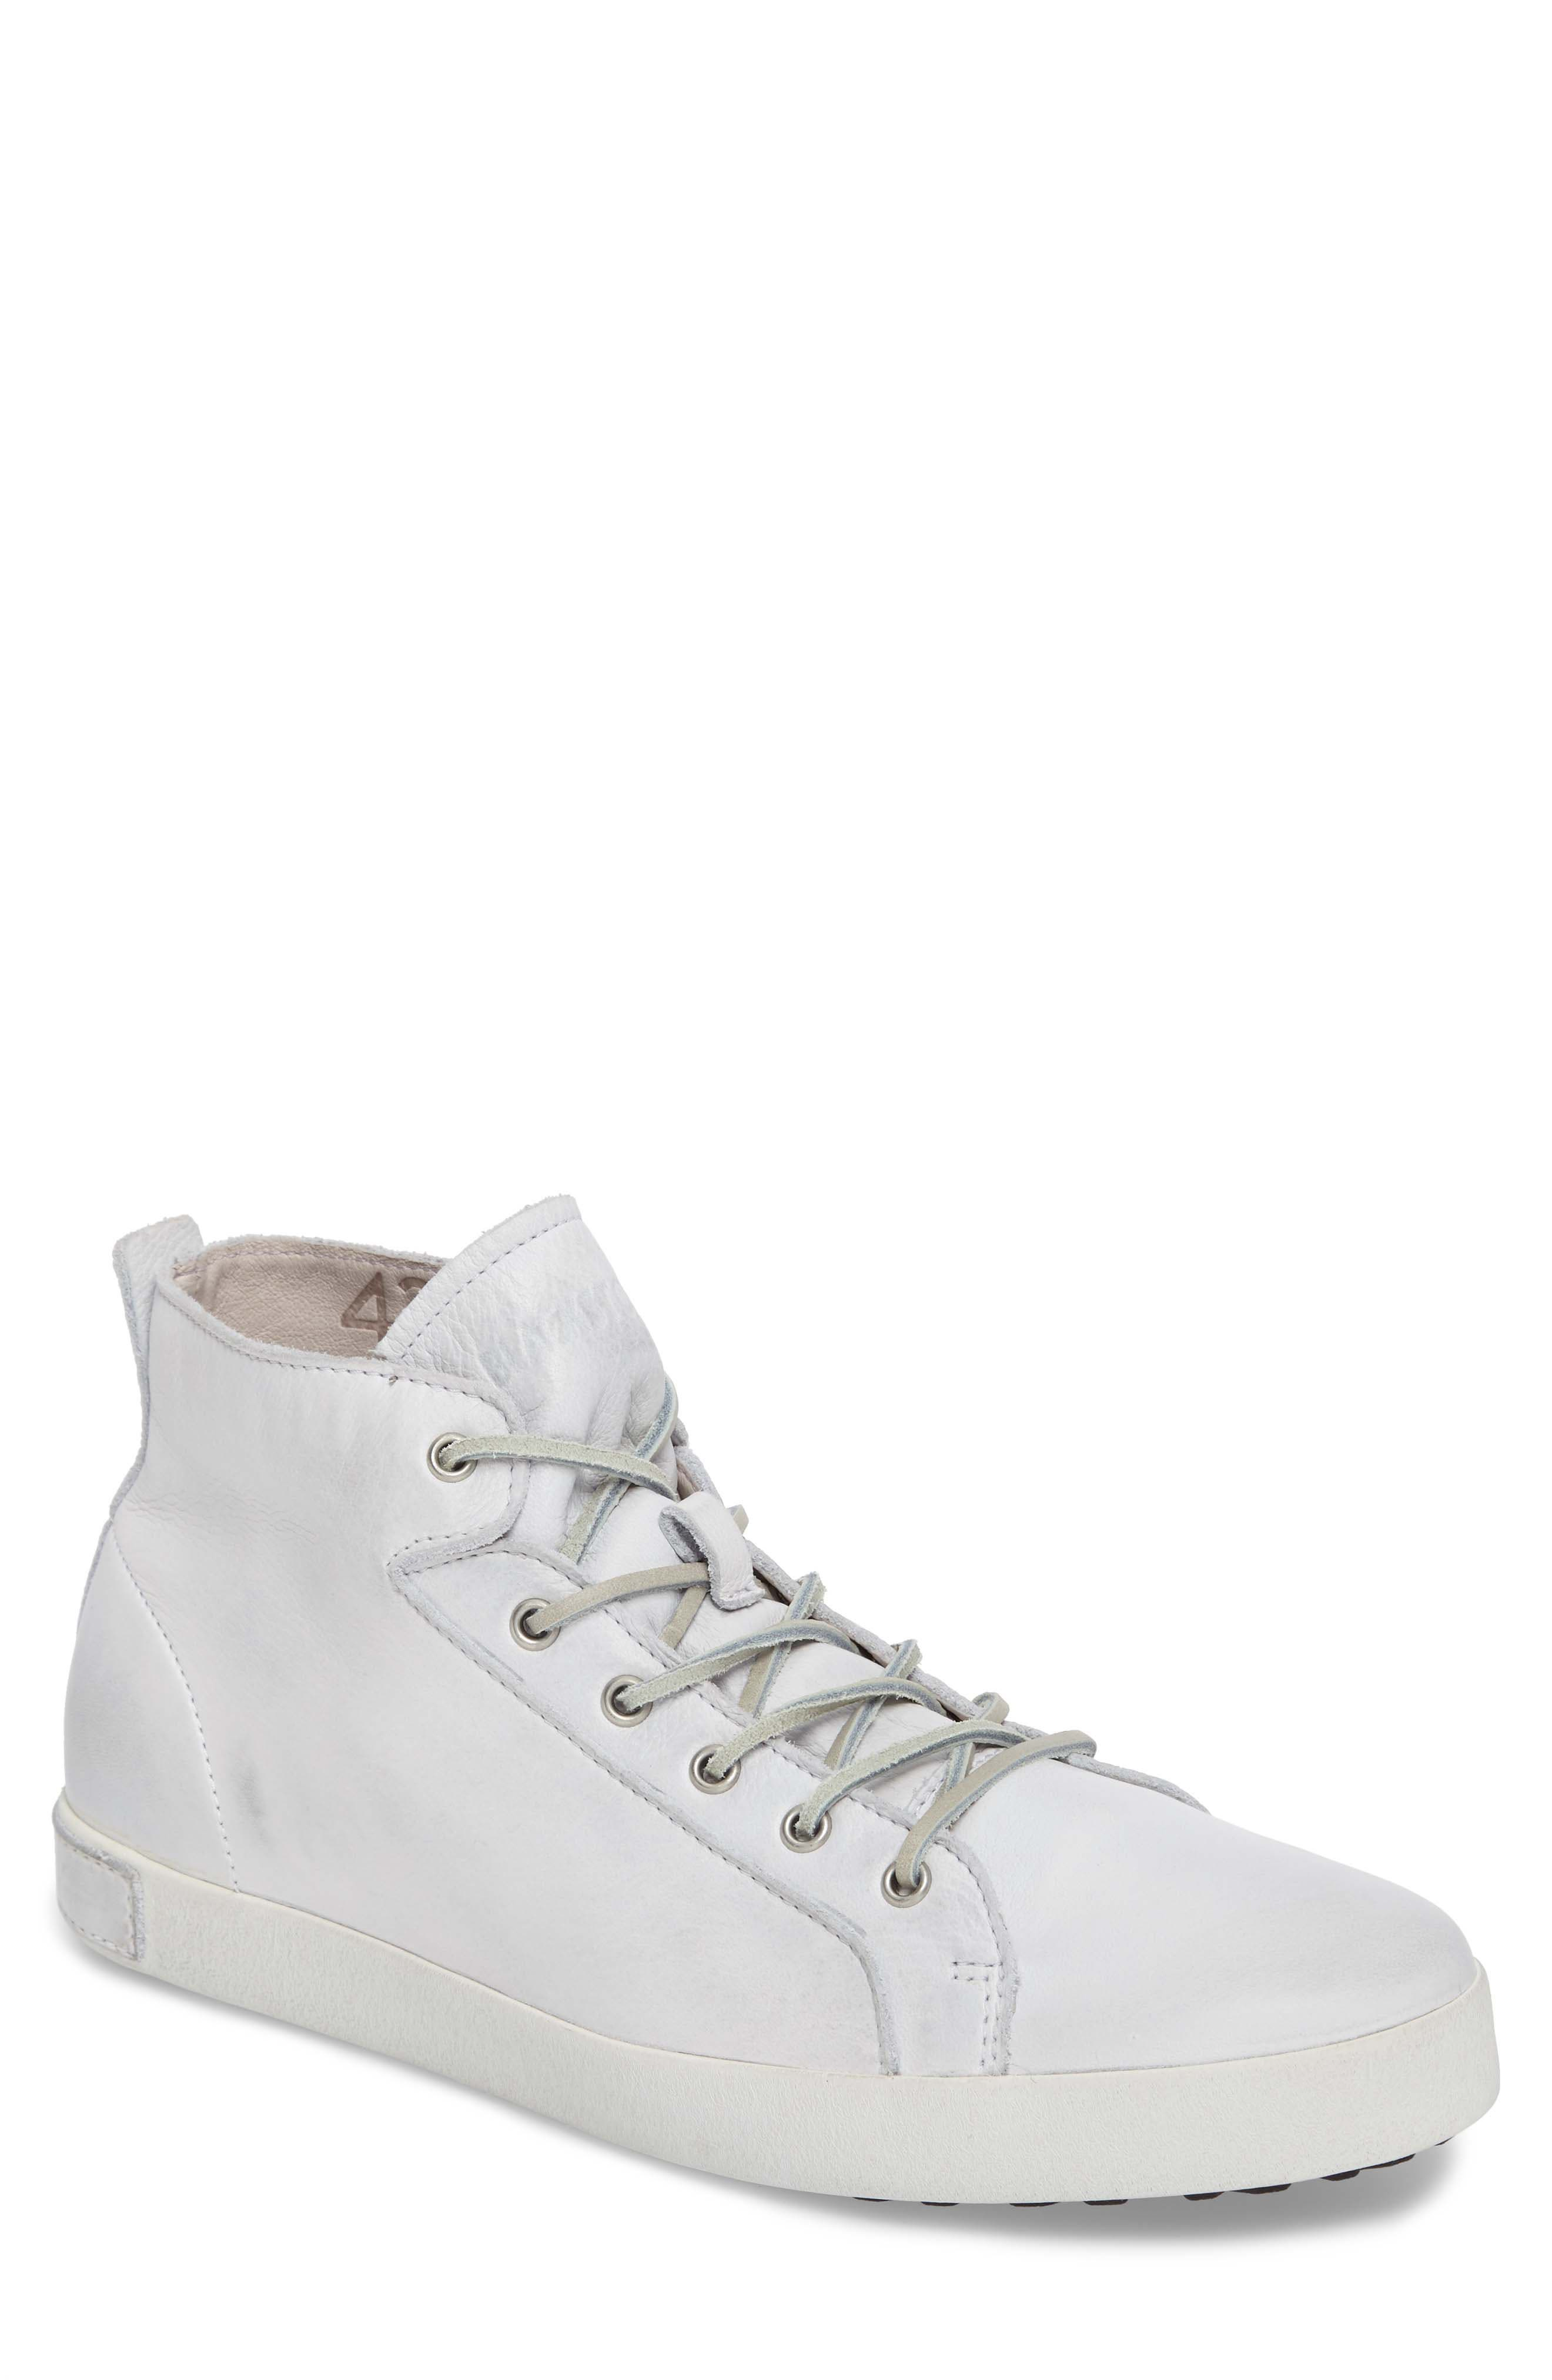 'JM03' Sneaker,                         Main,                         color, 100